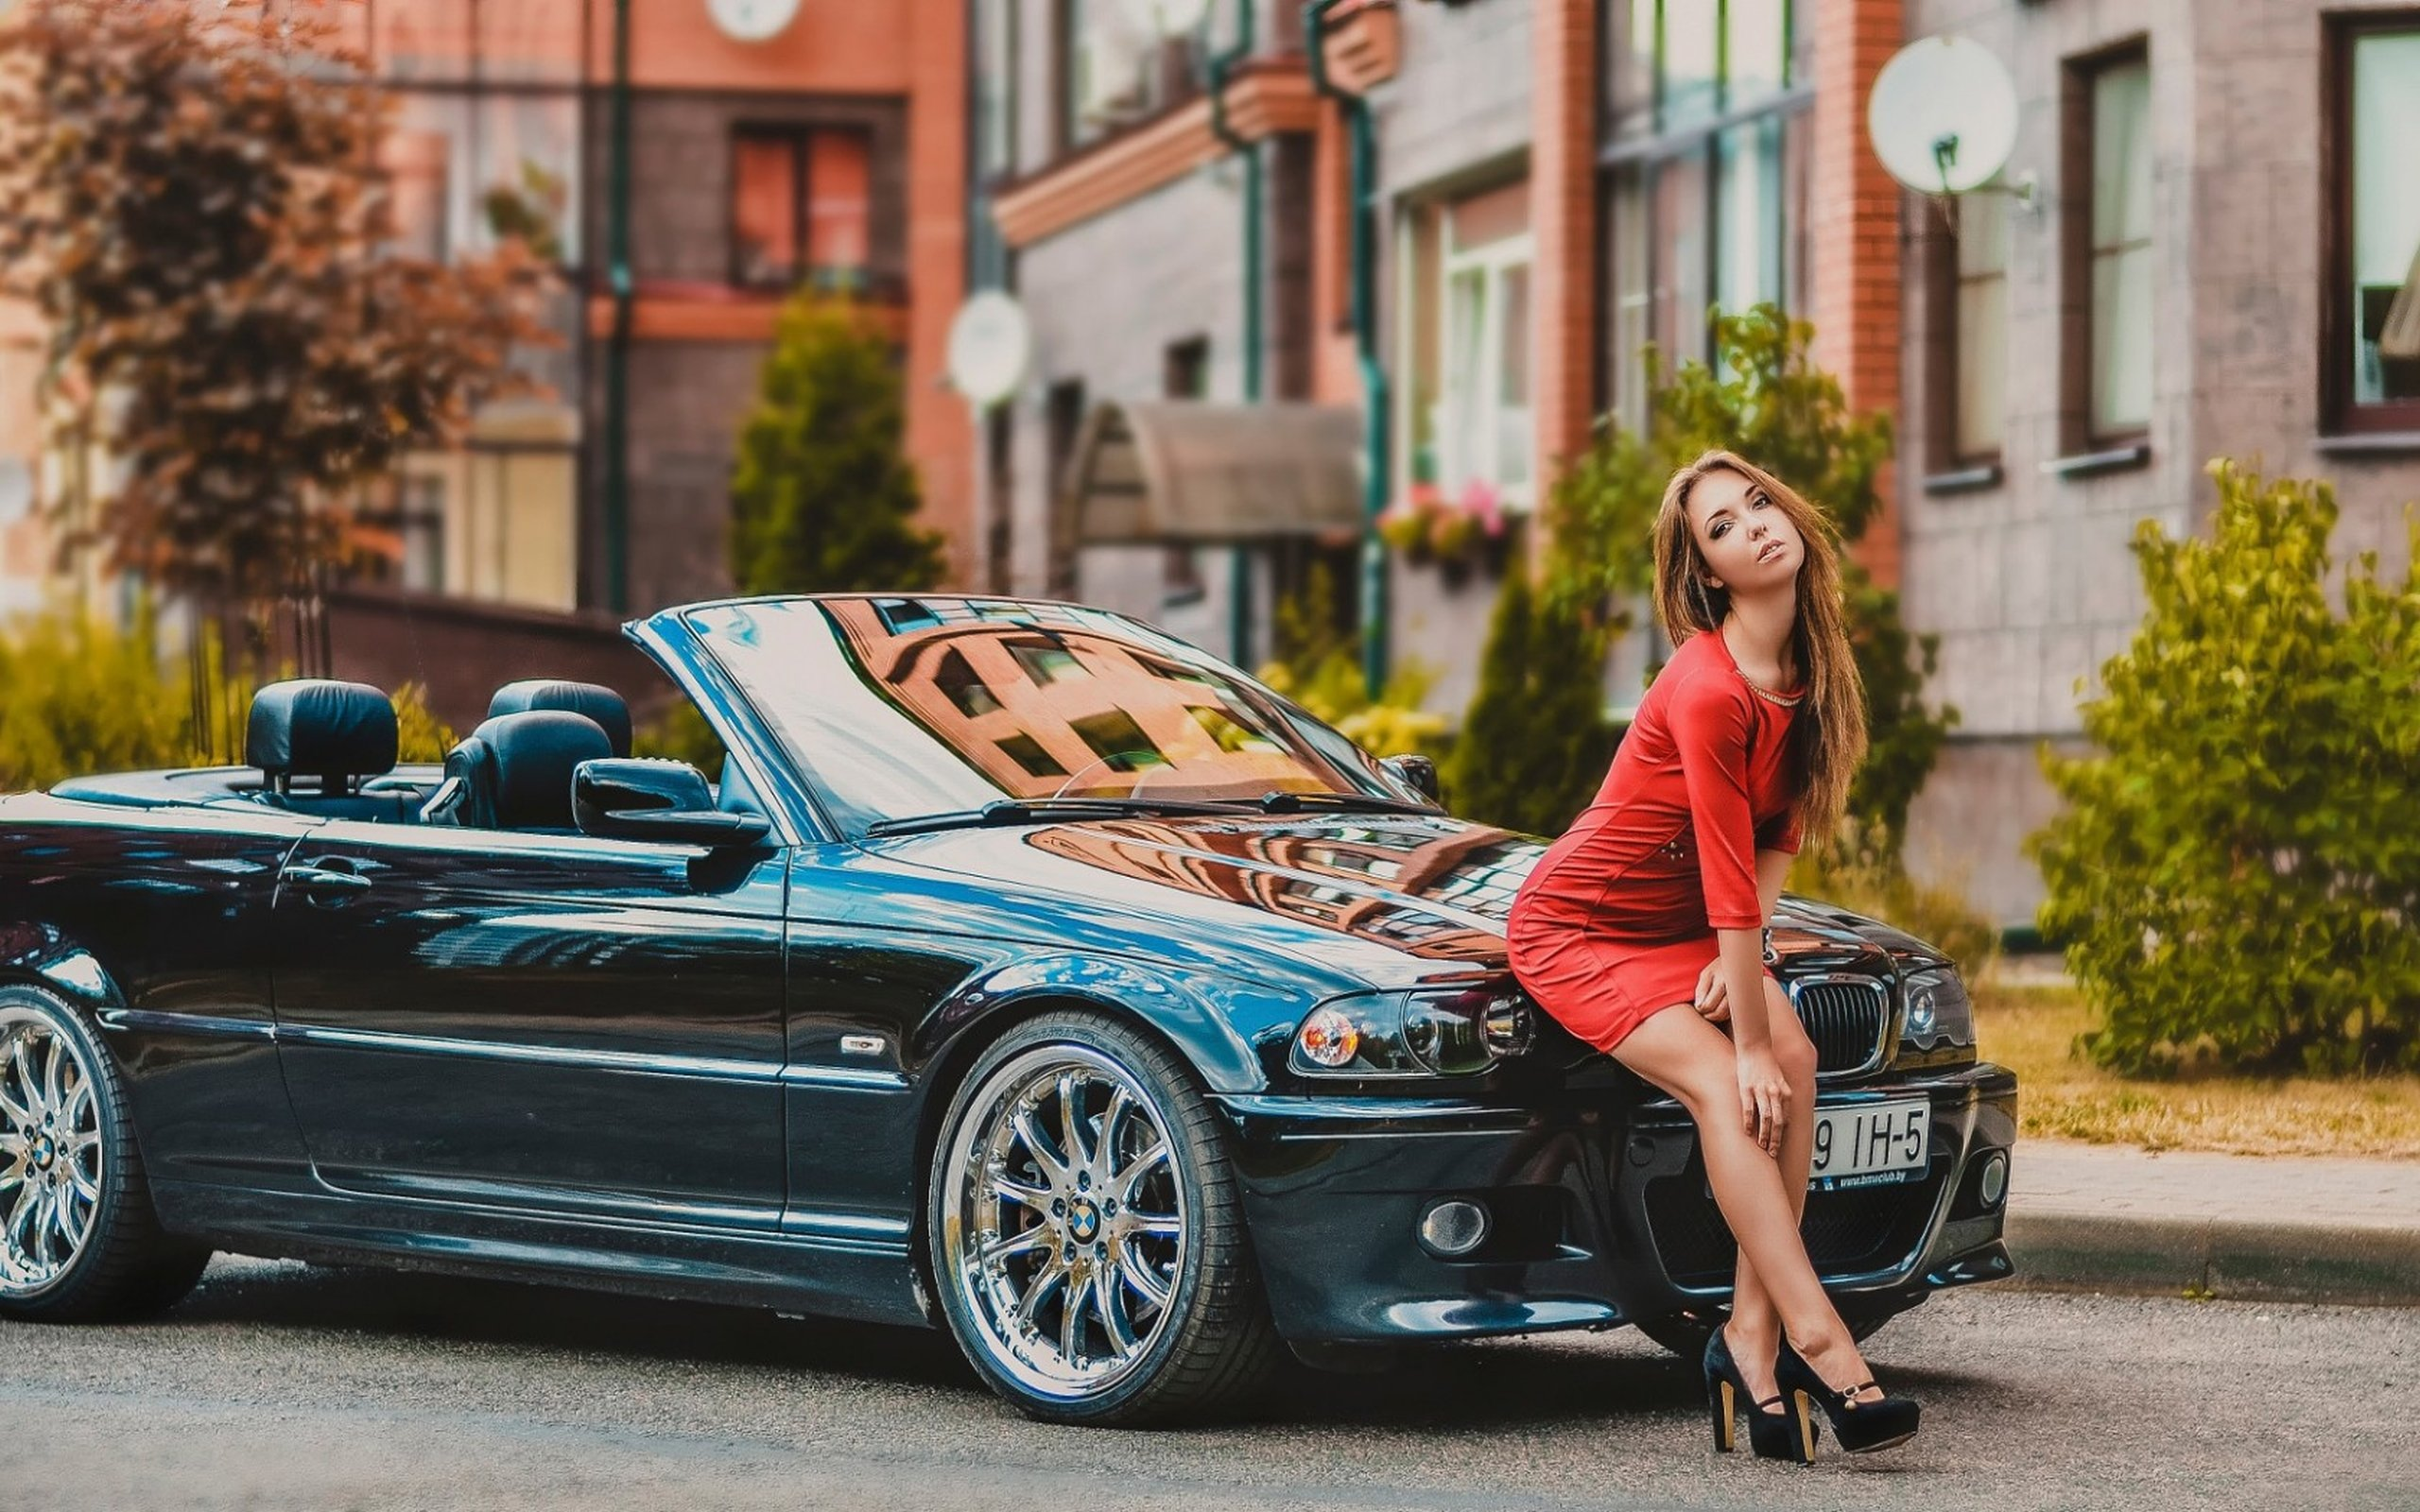 Heels Model Dress Sexy Woman Legs Skirt Girl Bmw Car Pose